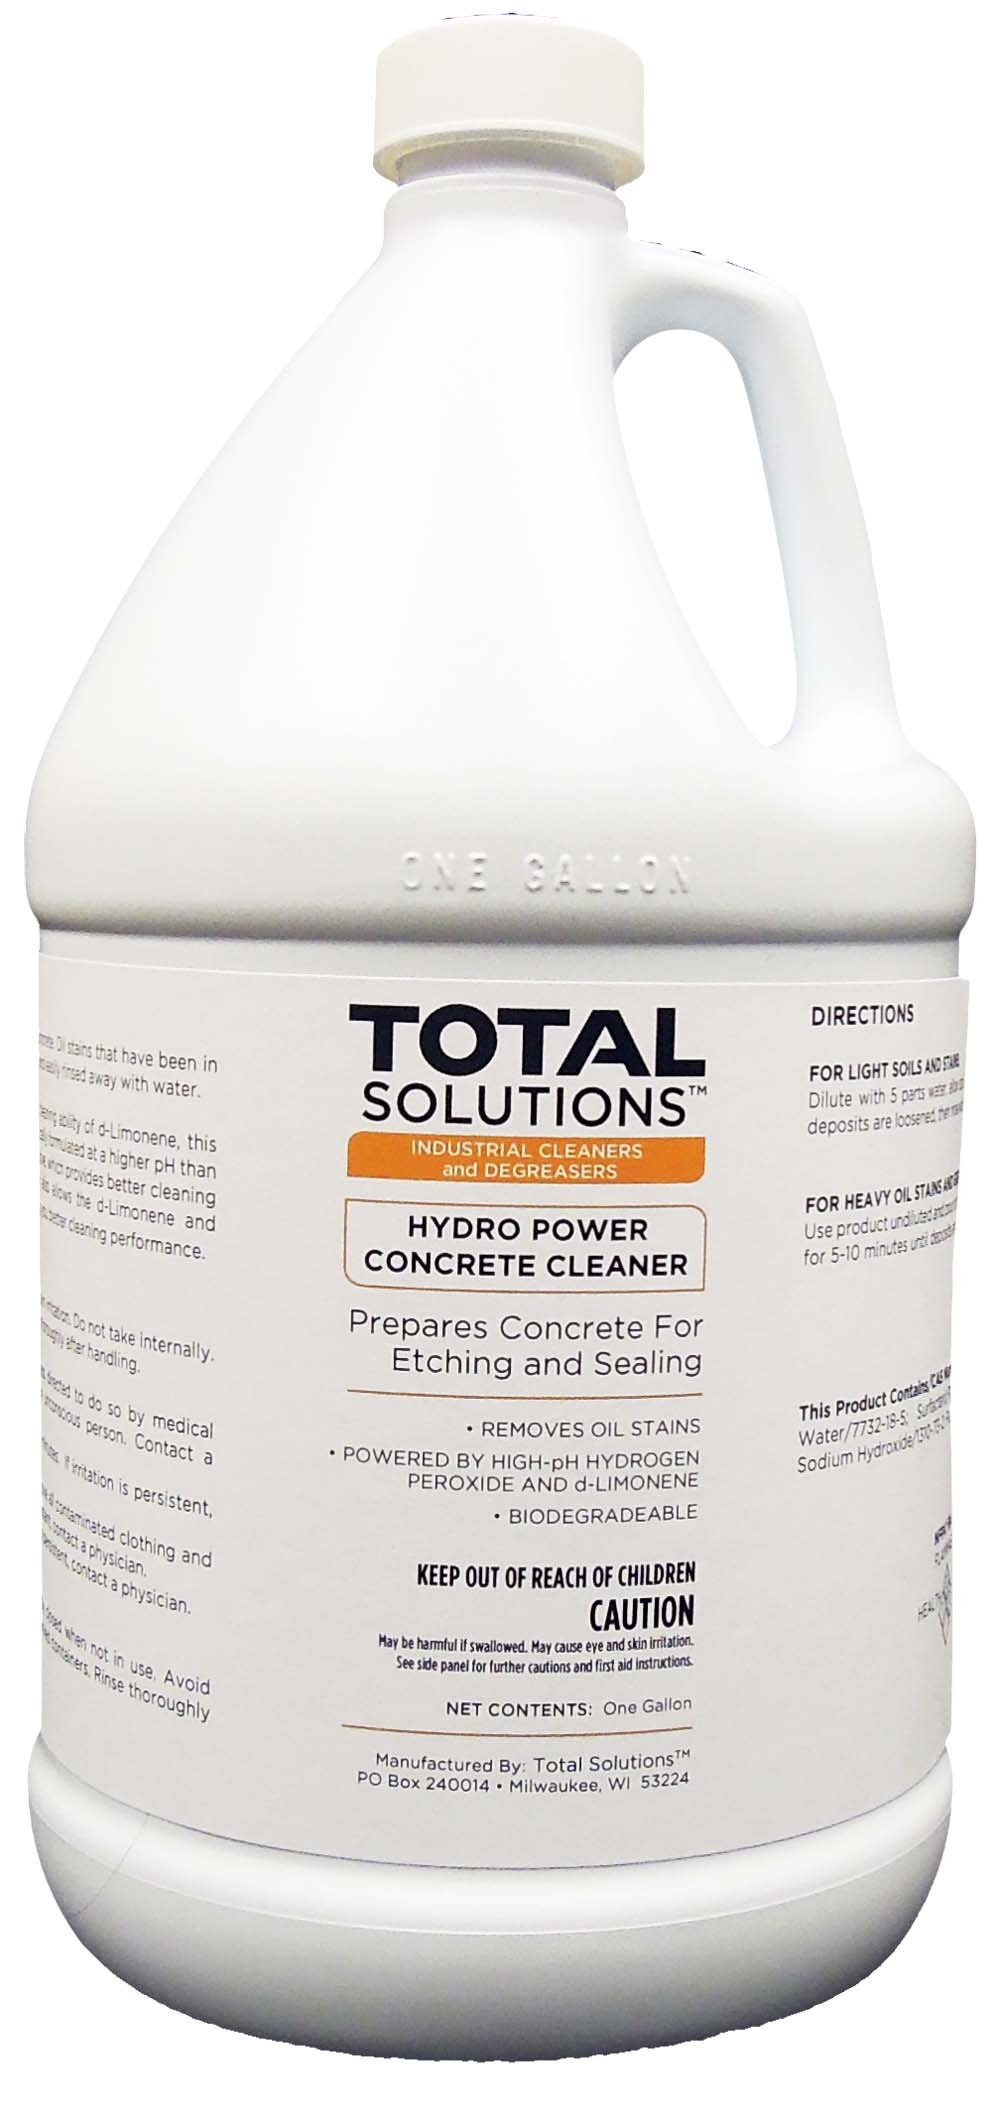 Hydro Power Concrete Cleaner, Biodegradable Concrete Stain Remover- 4X1 Gallon Case by EcoClean Solutions